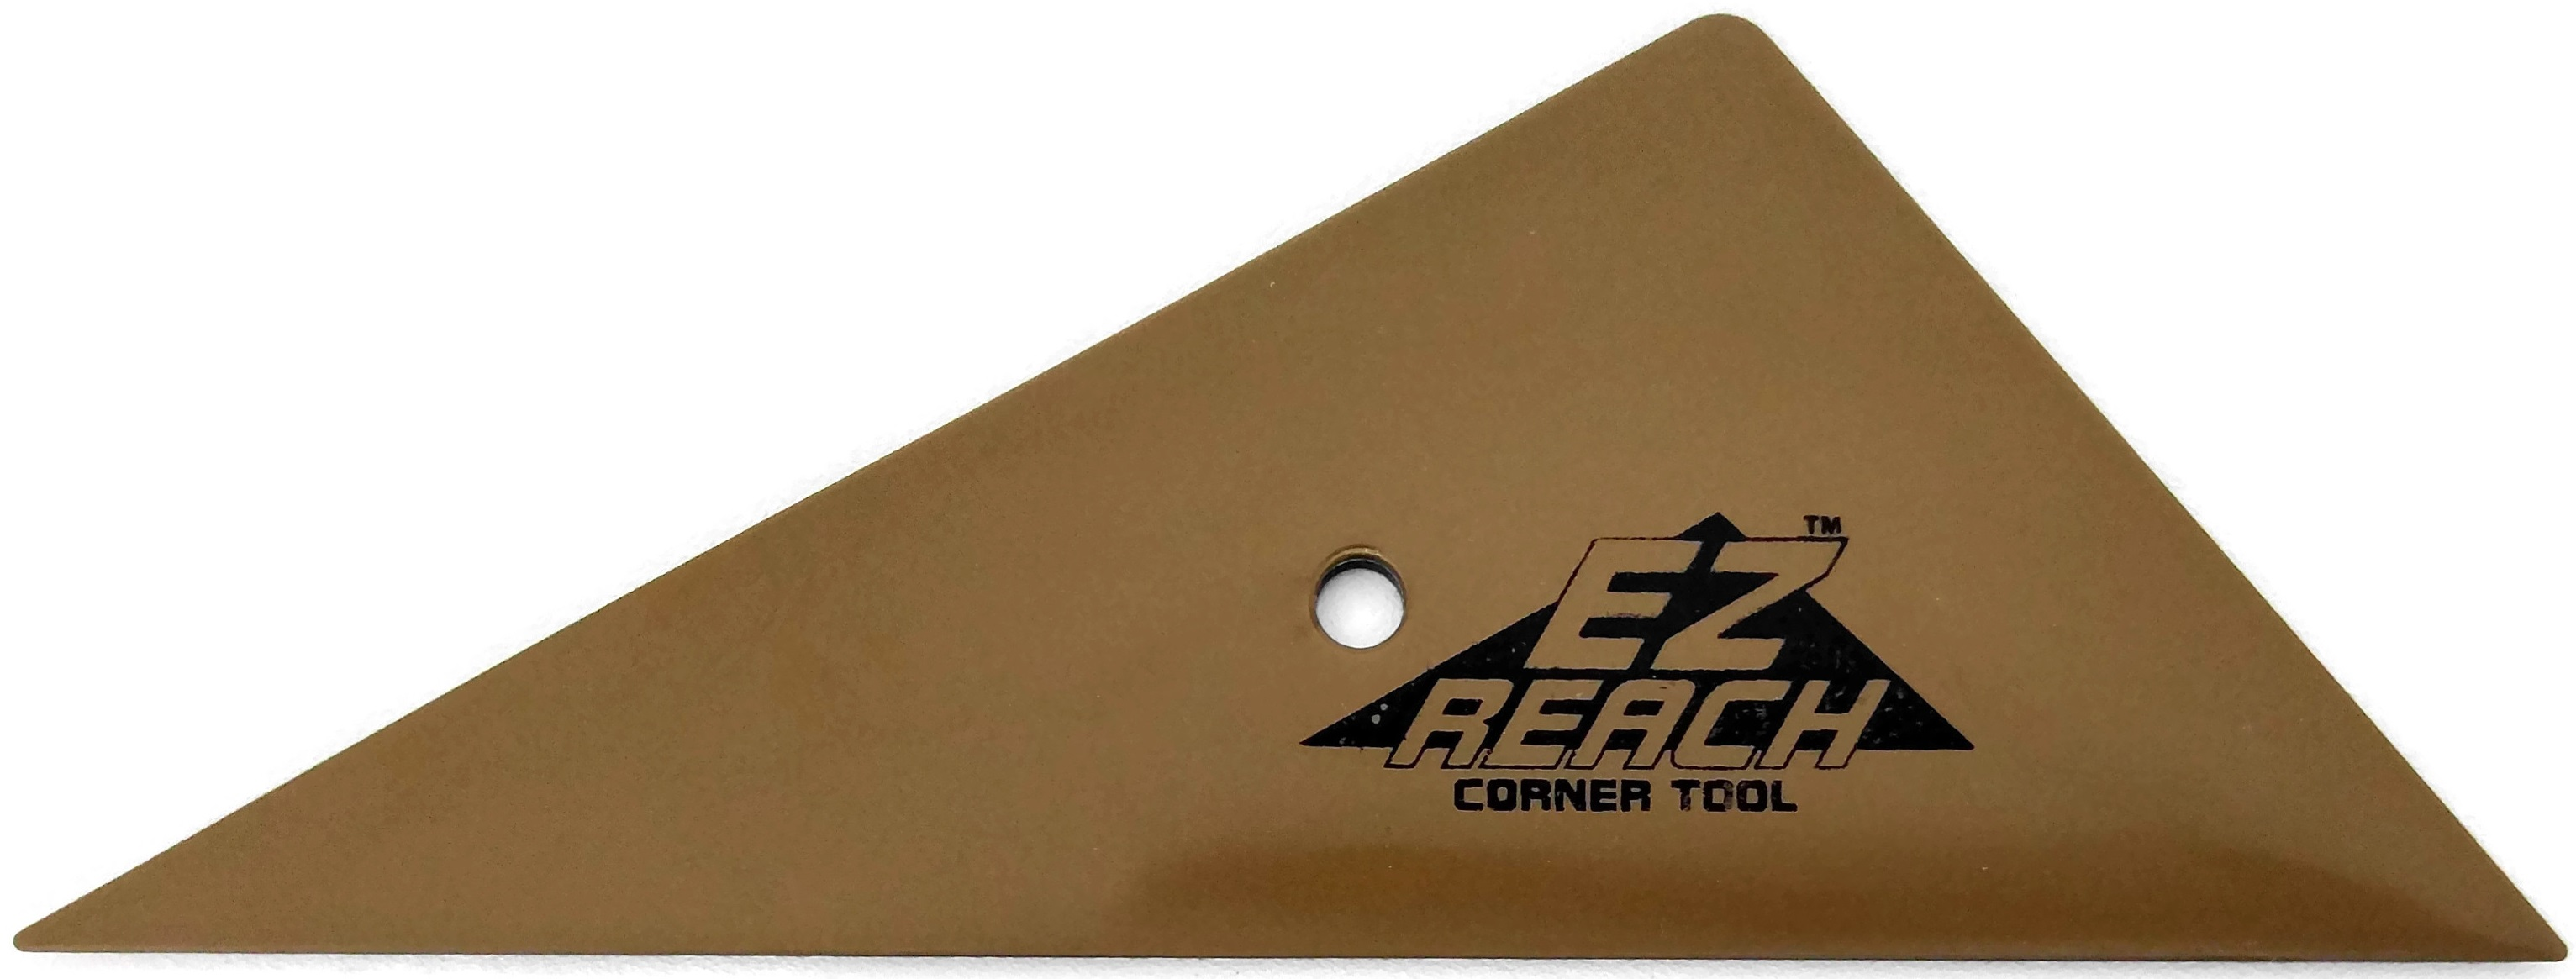 The Gold EZ Reach Ultra Corner Window Film Installation Tint Tool